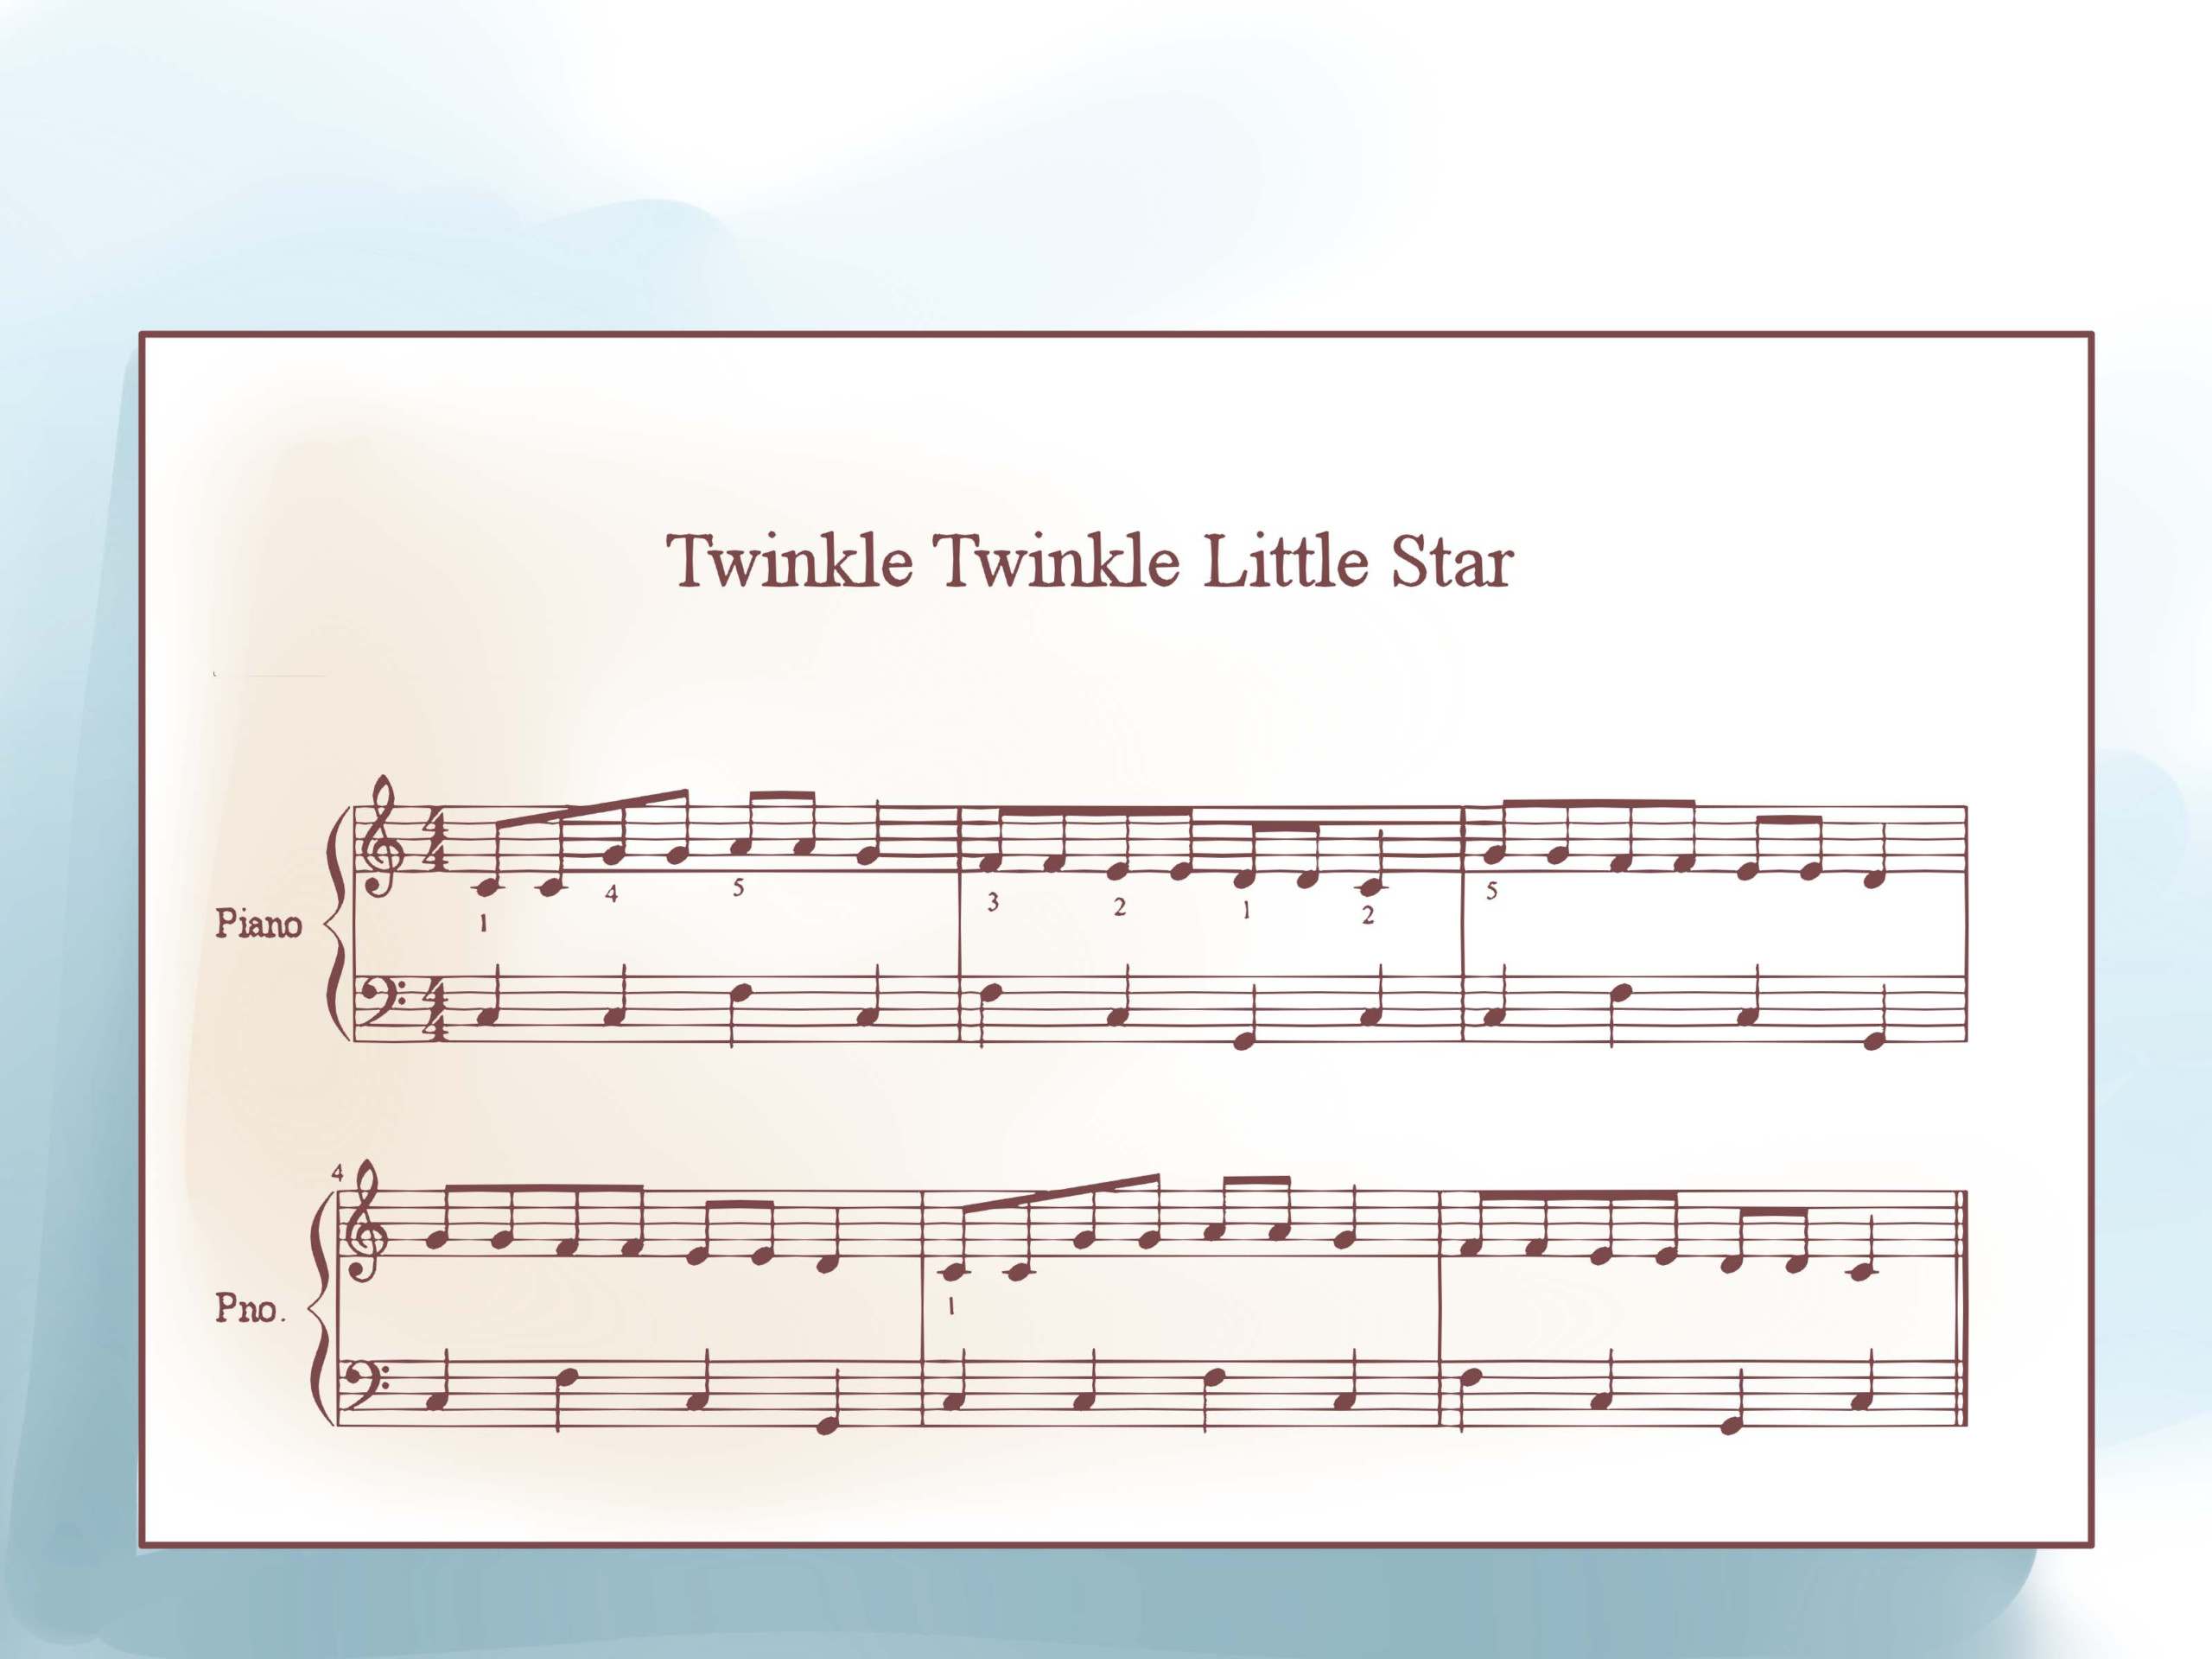 How To Write Sheet Music (With Pictures) - Wikihow